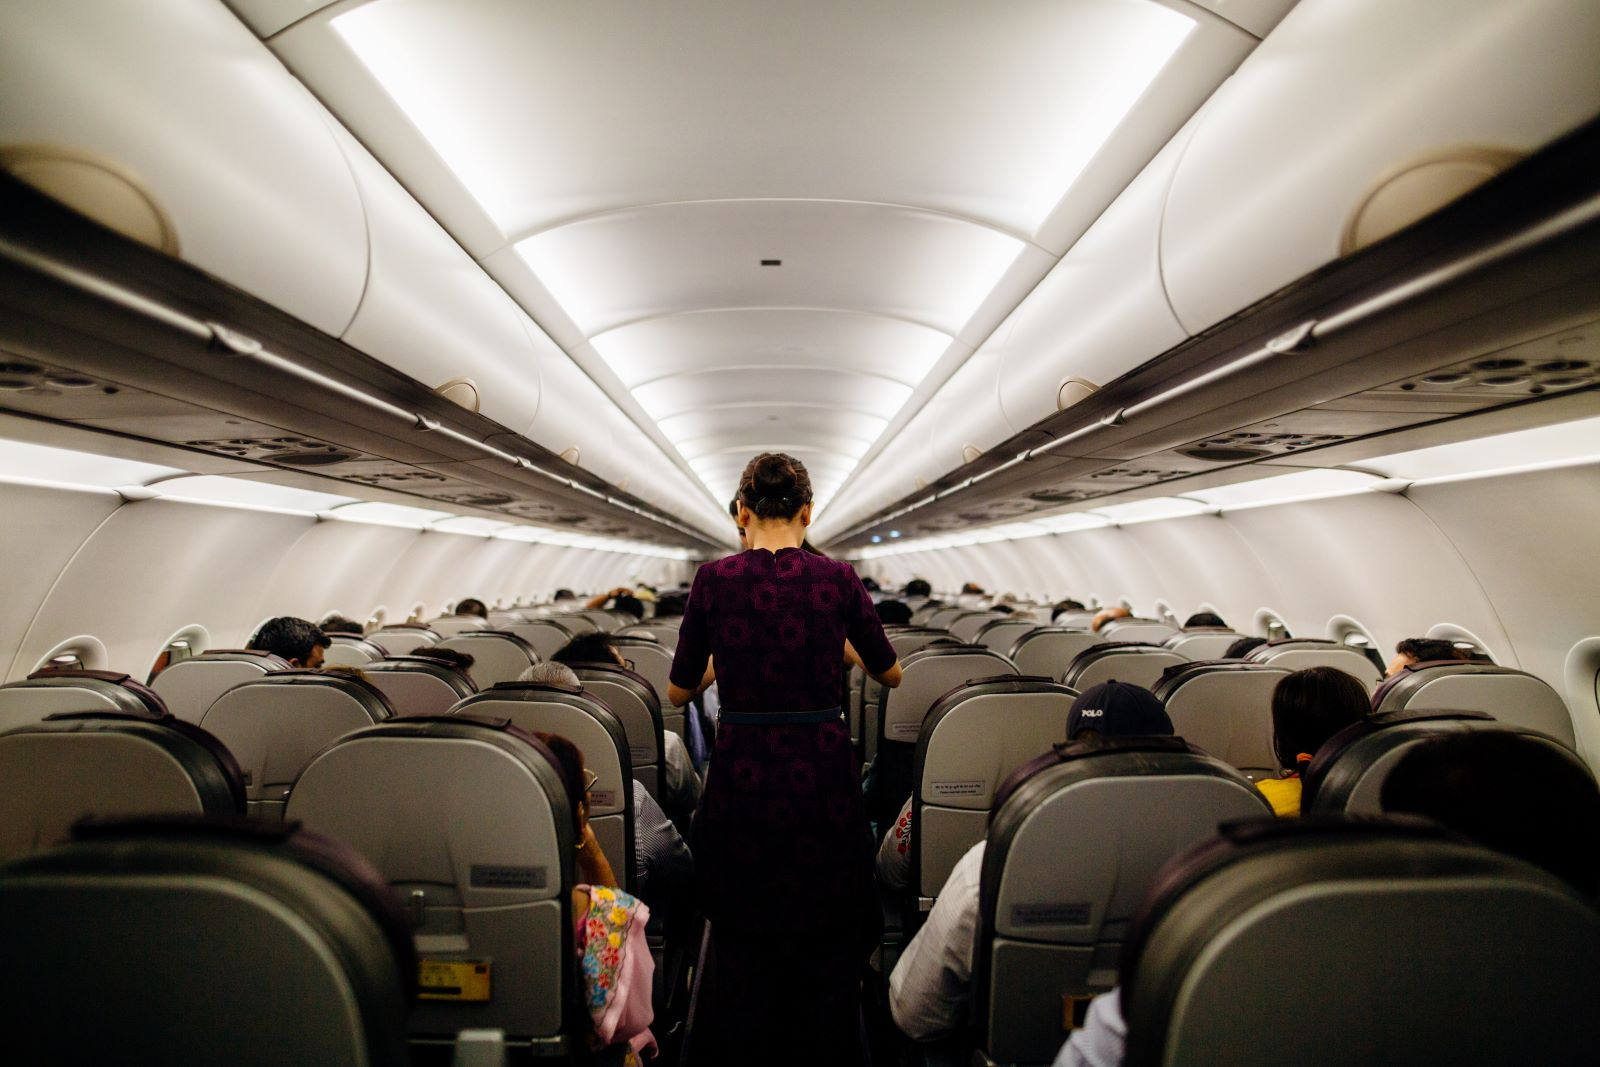 5 Airline Discounts for Seniors -The inside of a full commercial passenger plane with a flight attendant standing in the aisle